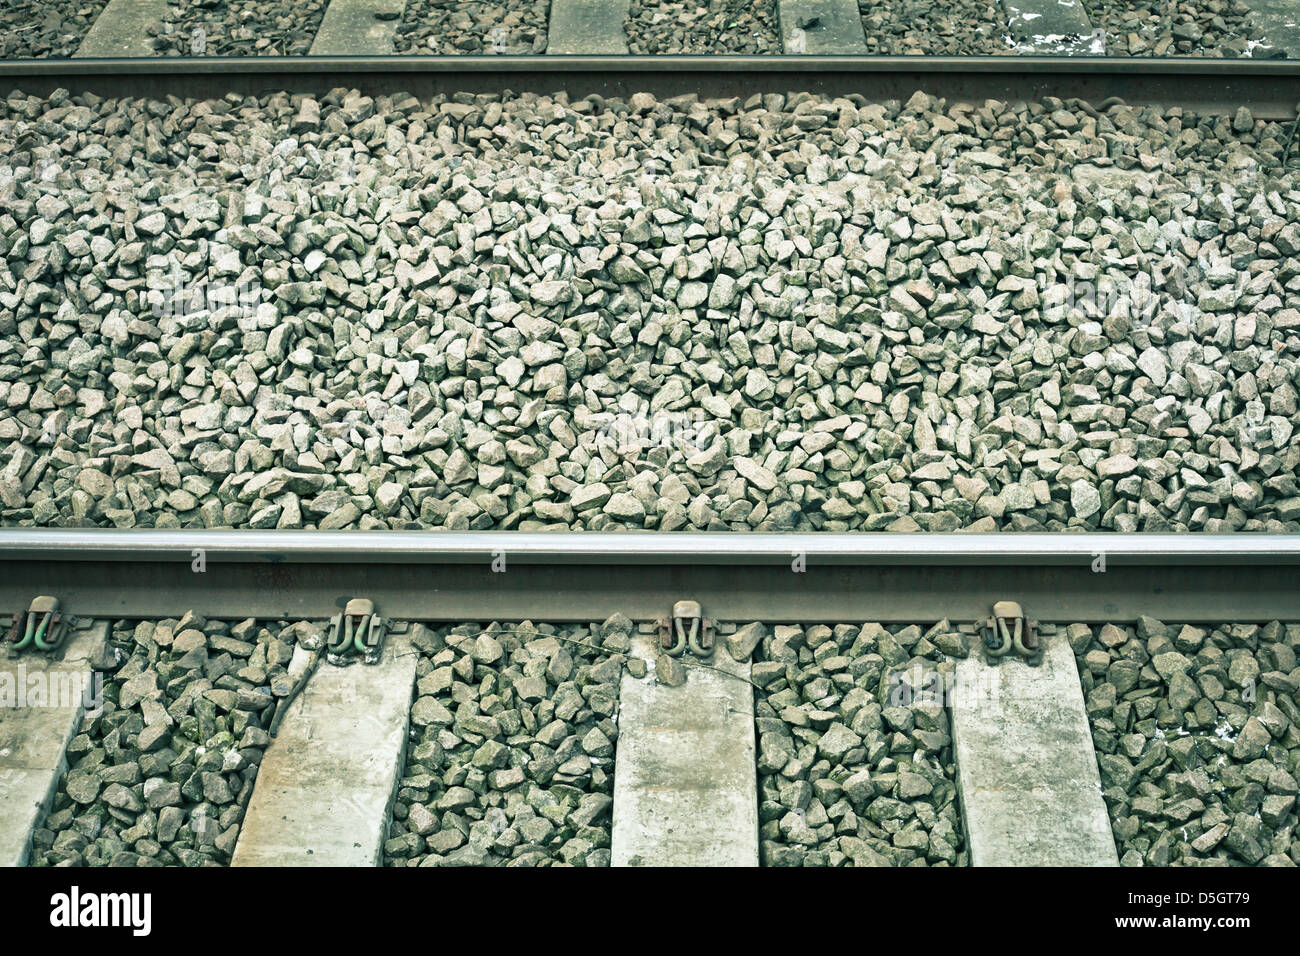 Railway tracks in detail in muted tones - Stock Image